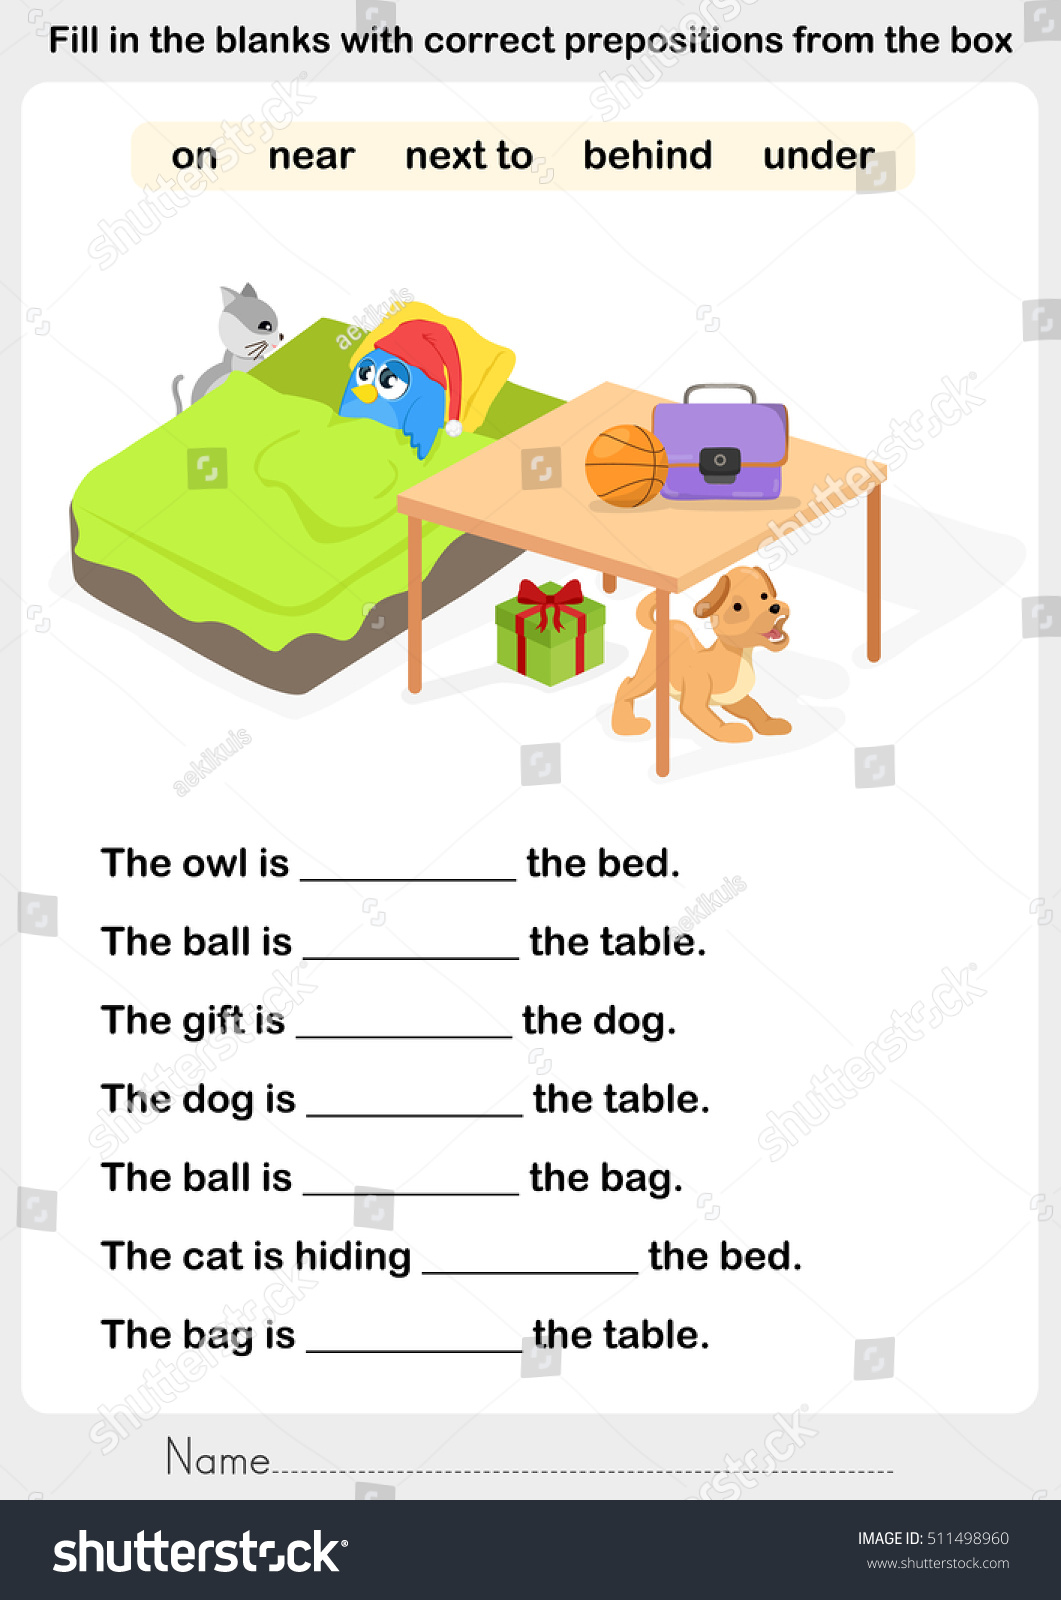 Worksheet On Using Prepositions